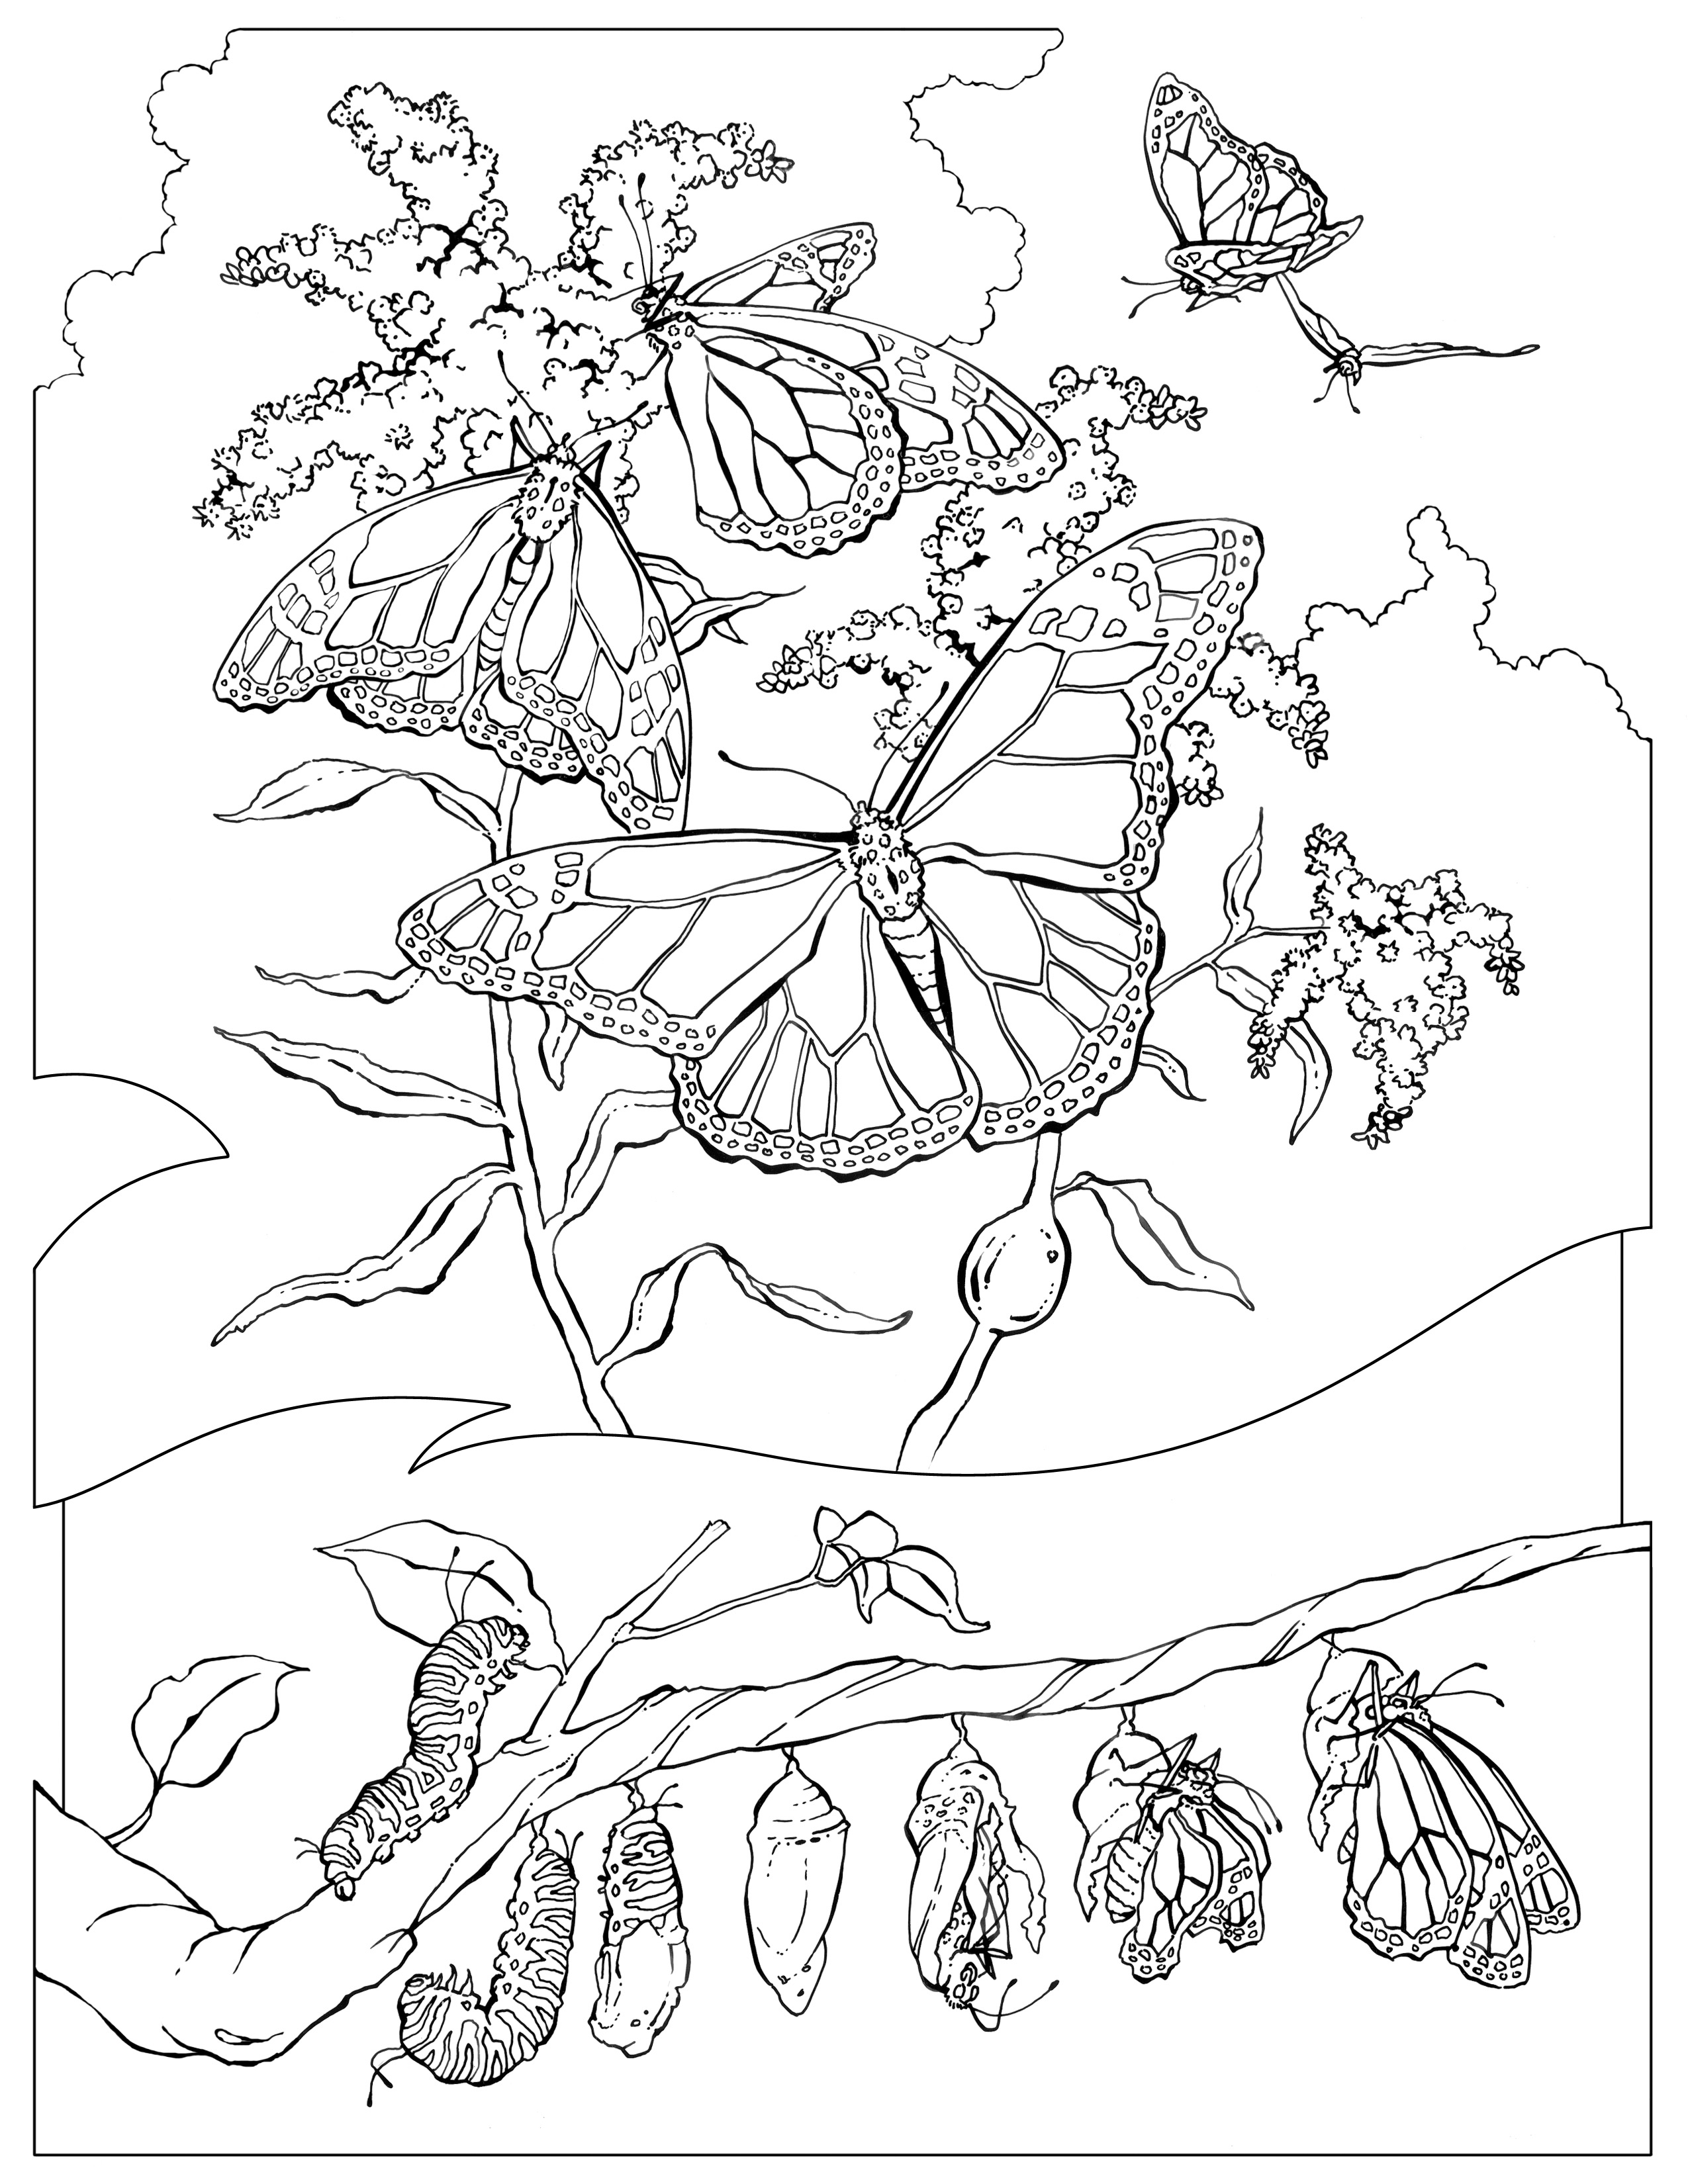 Monarch butterfly Coloring Page National Geographic Kids Coloring Gallery Of Detailed Coloring Pages for Adults Collection